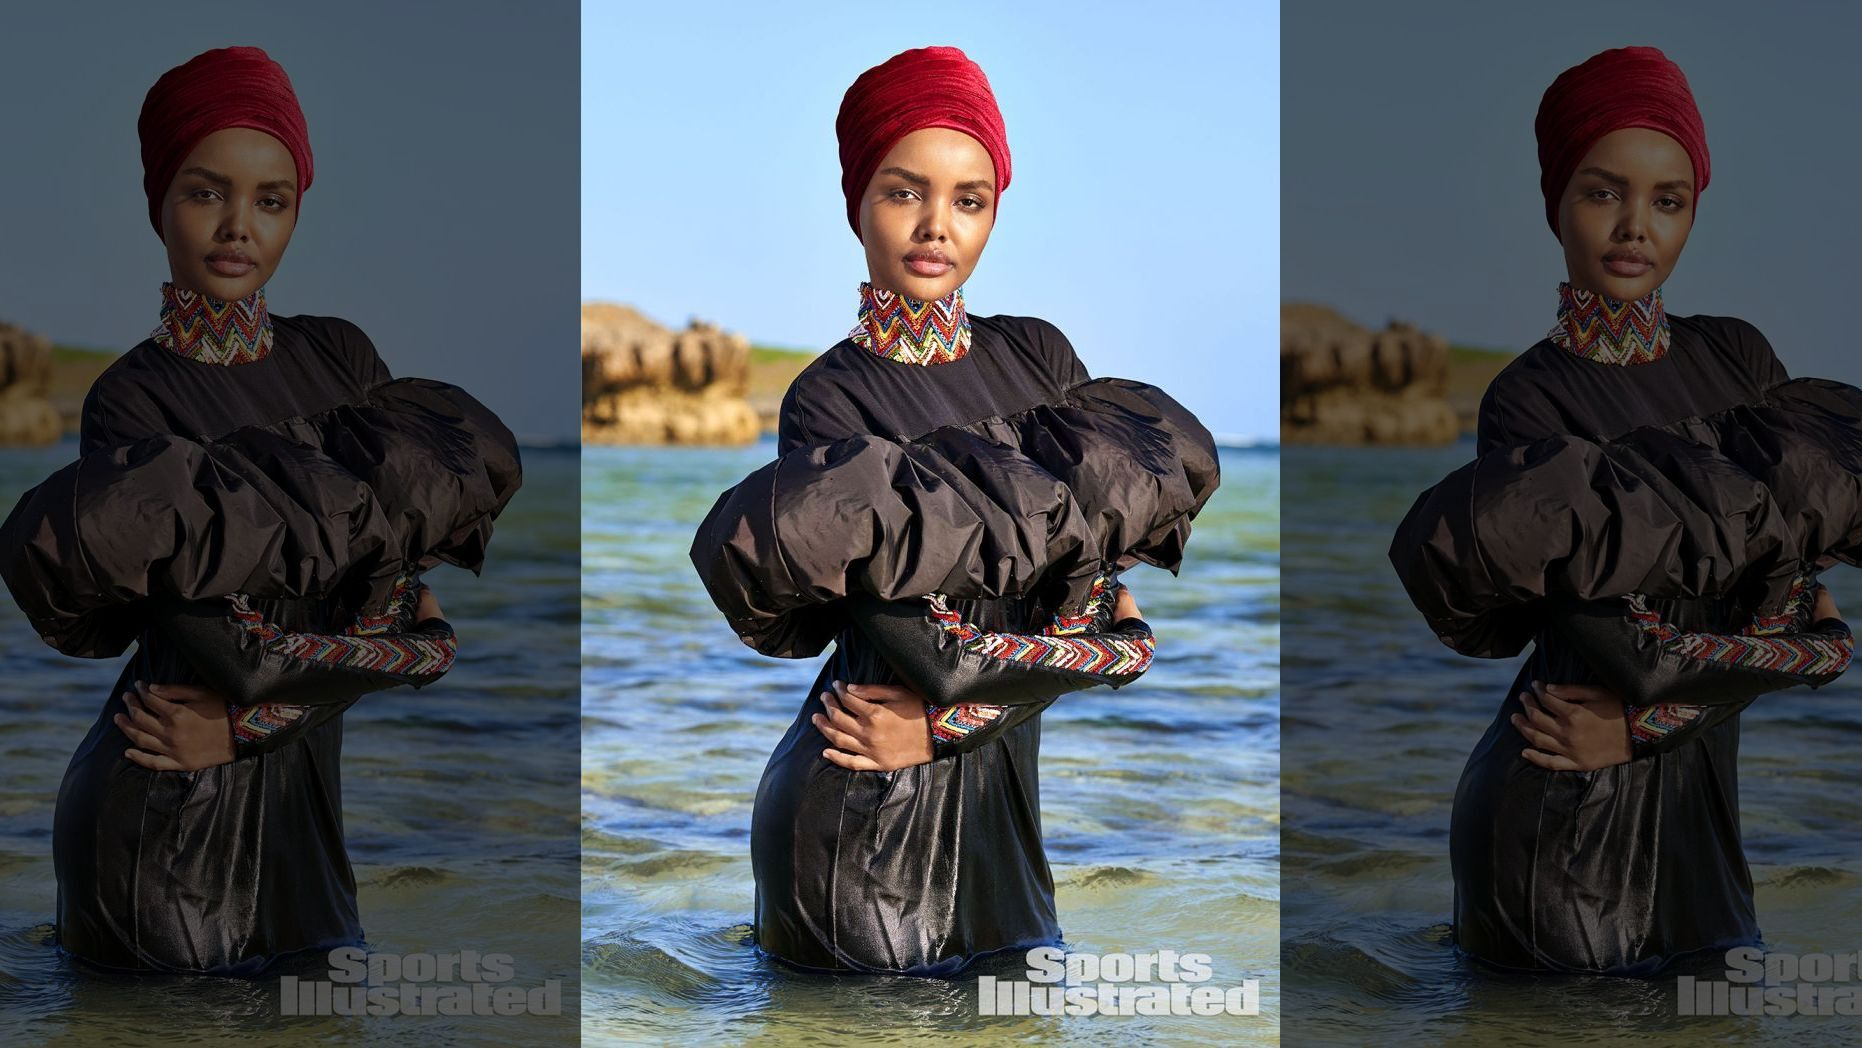 Sports Illustrated announced that Halima Aden